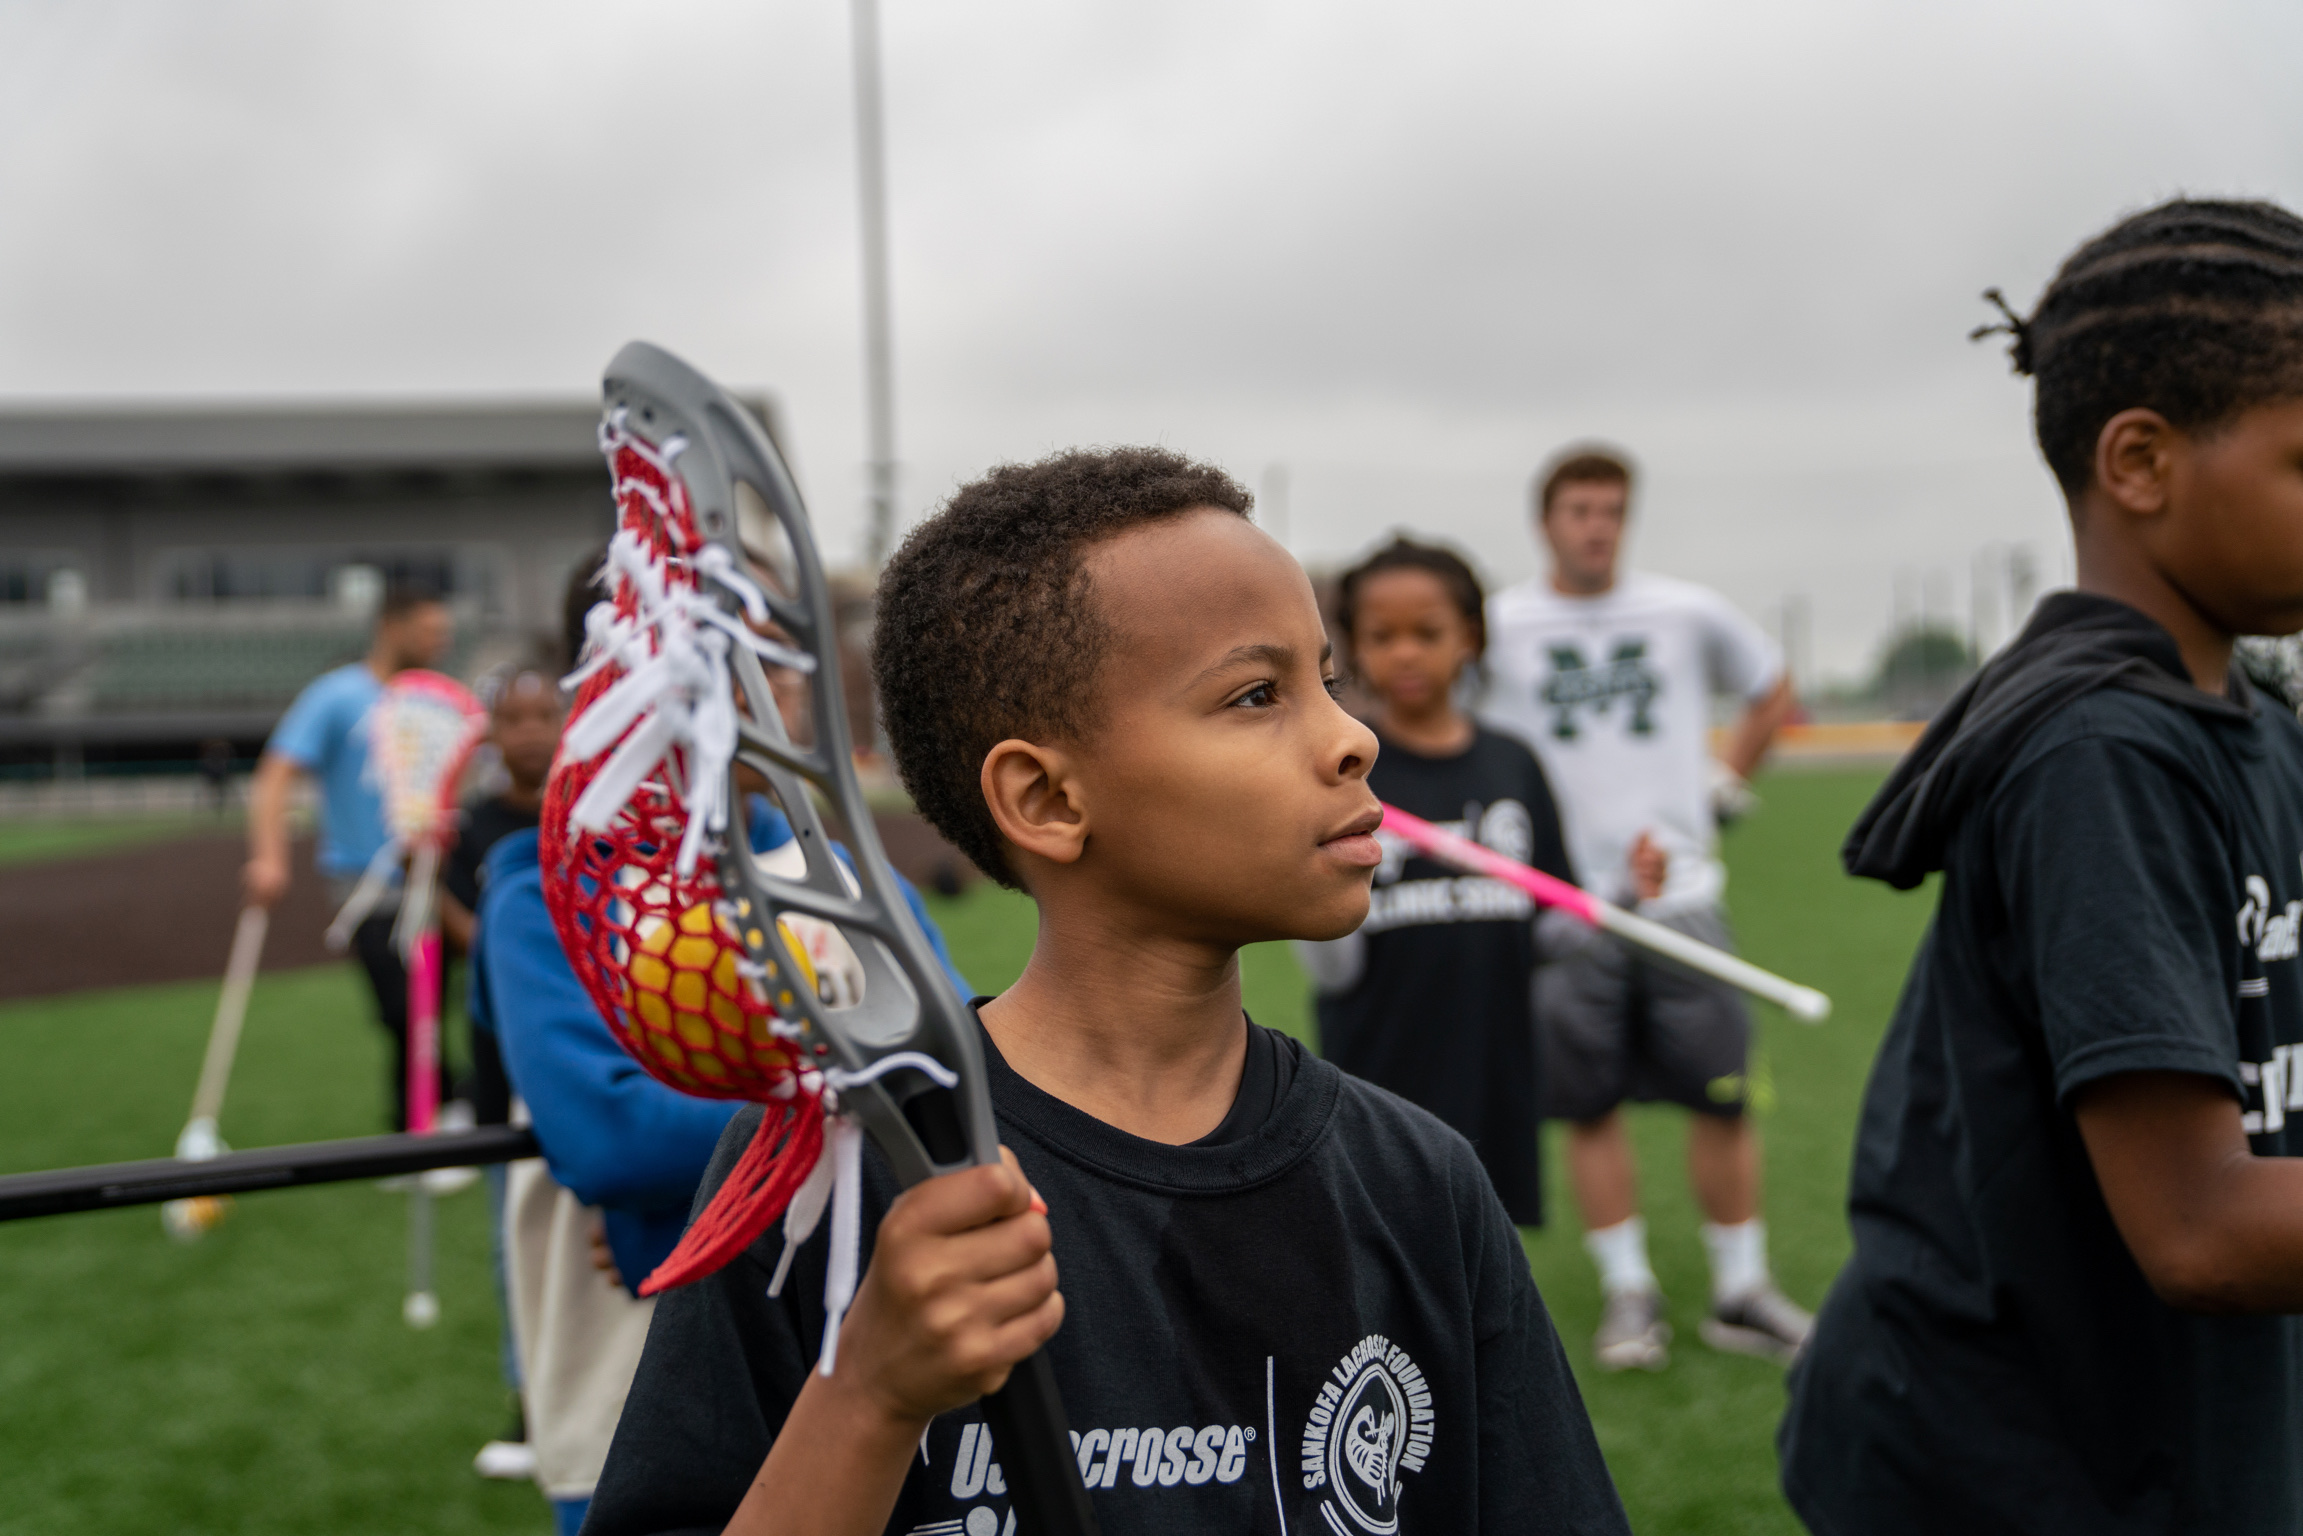 New Horizons Lacrosse aims to support youth development in underserved communities through the the game of lacrosse. Our digital campaigns help amplify that message to support recruitment and fundraising efforts.